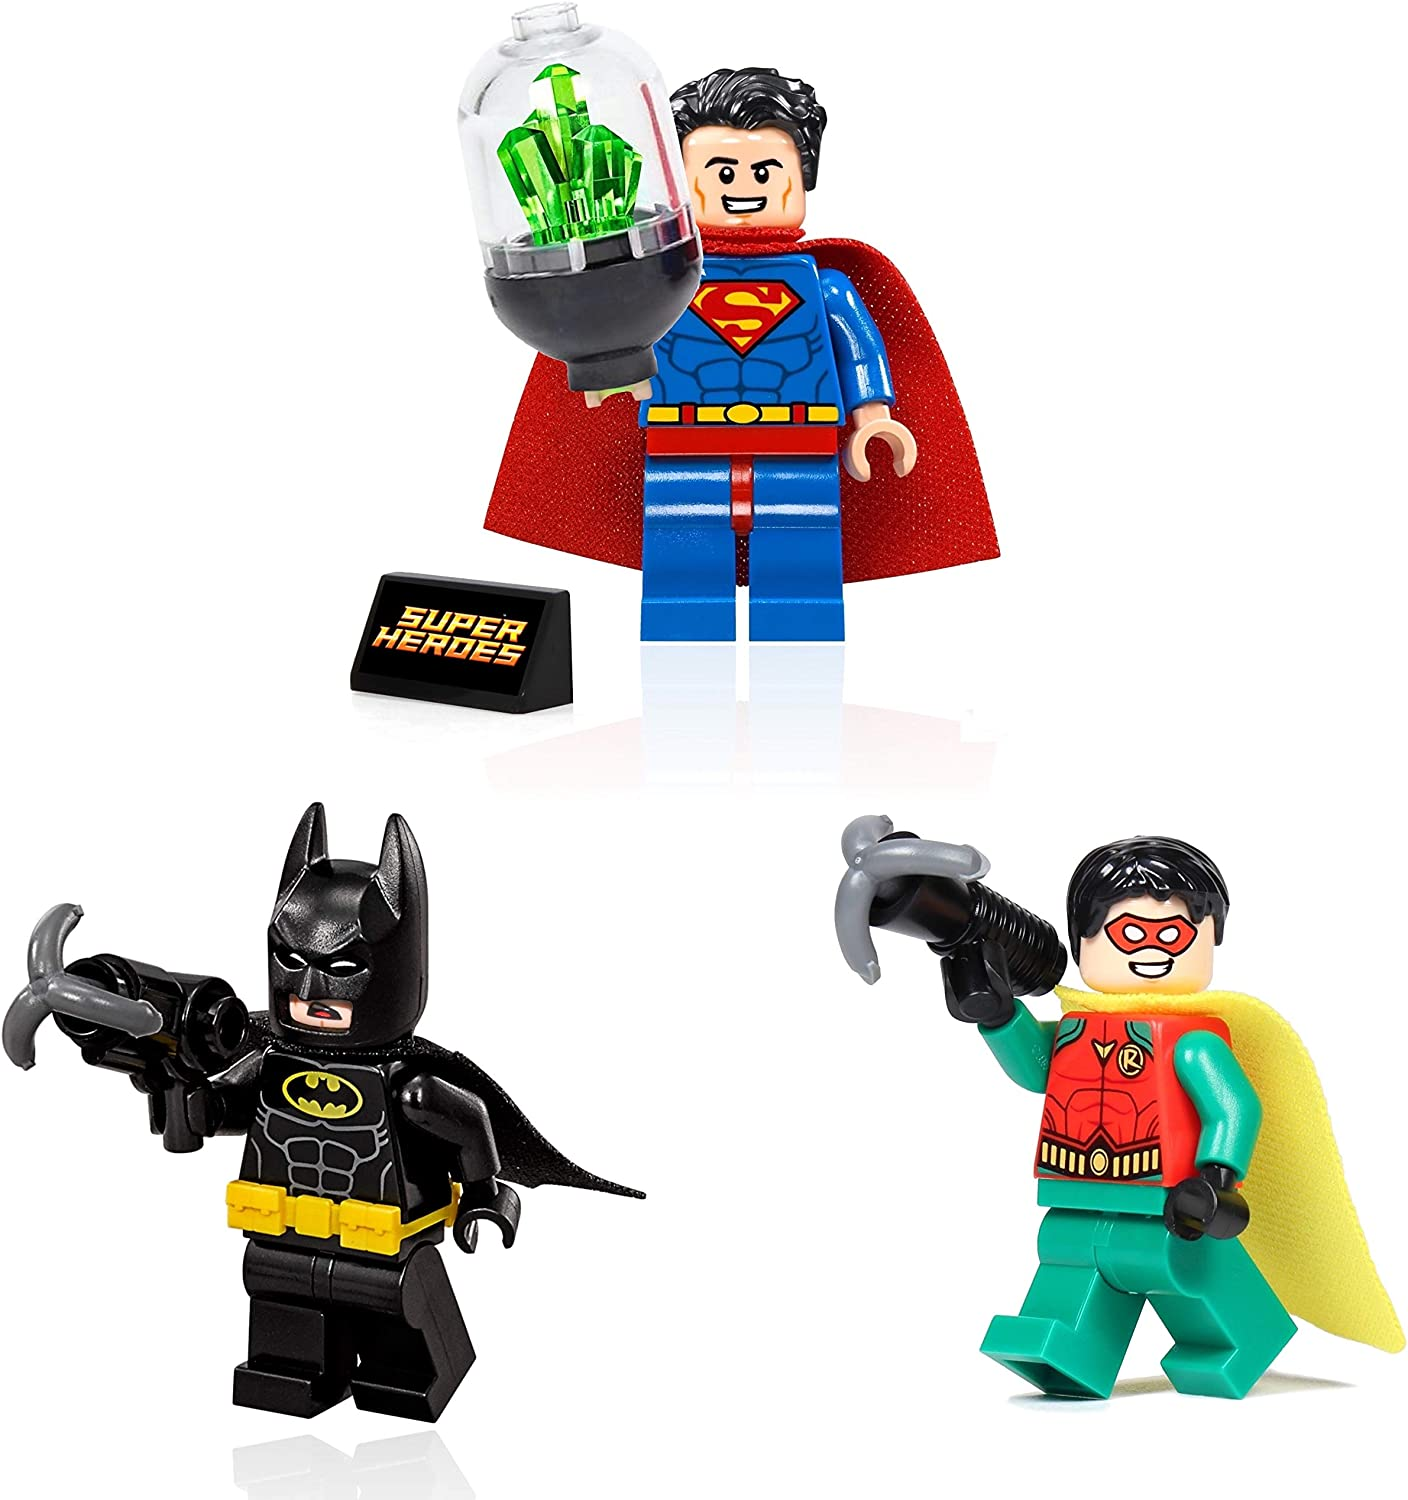 Superman and Robin Minifigures with Accessories and Display LEGO DC Super Heroes Combo Pack Batman